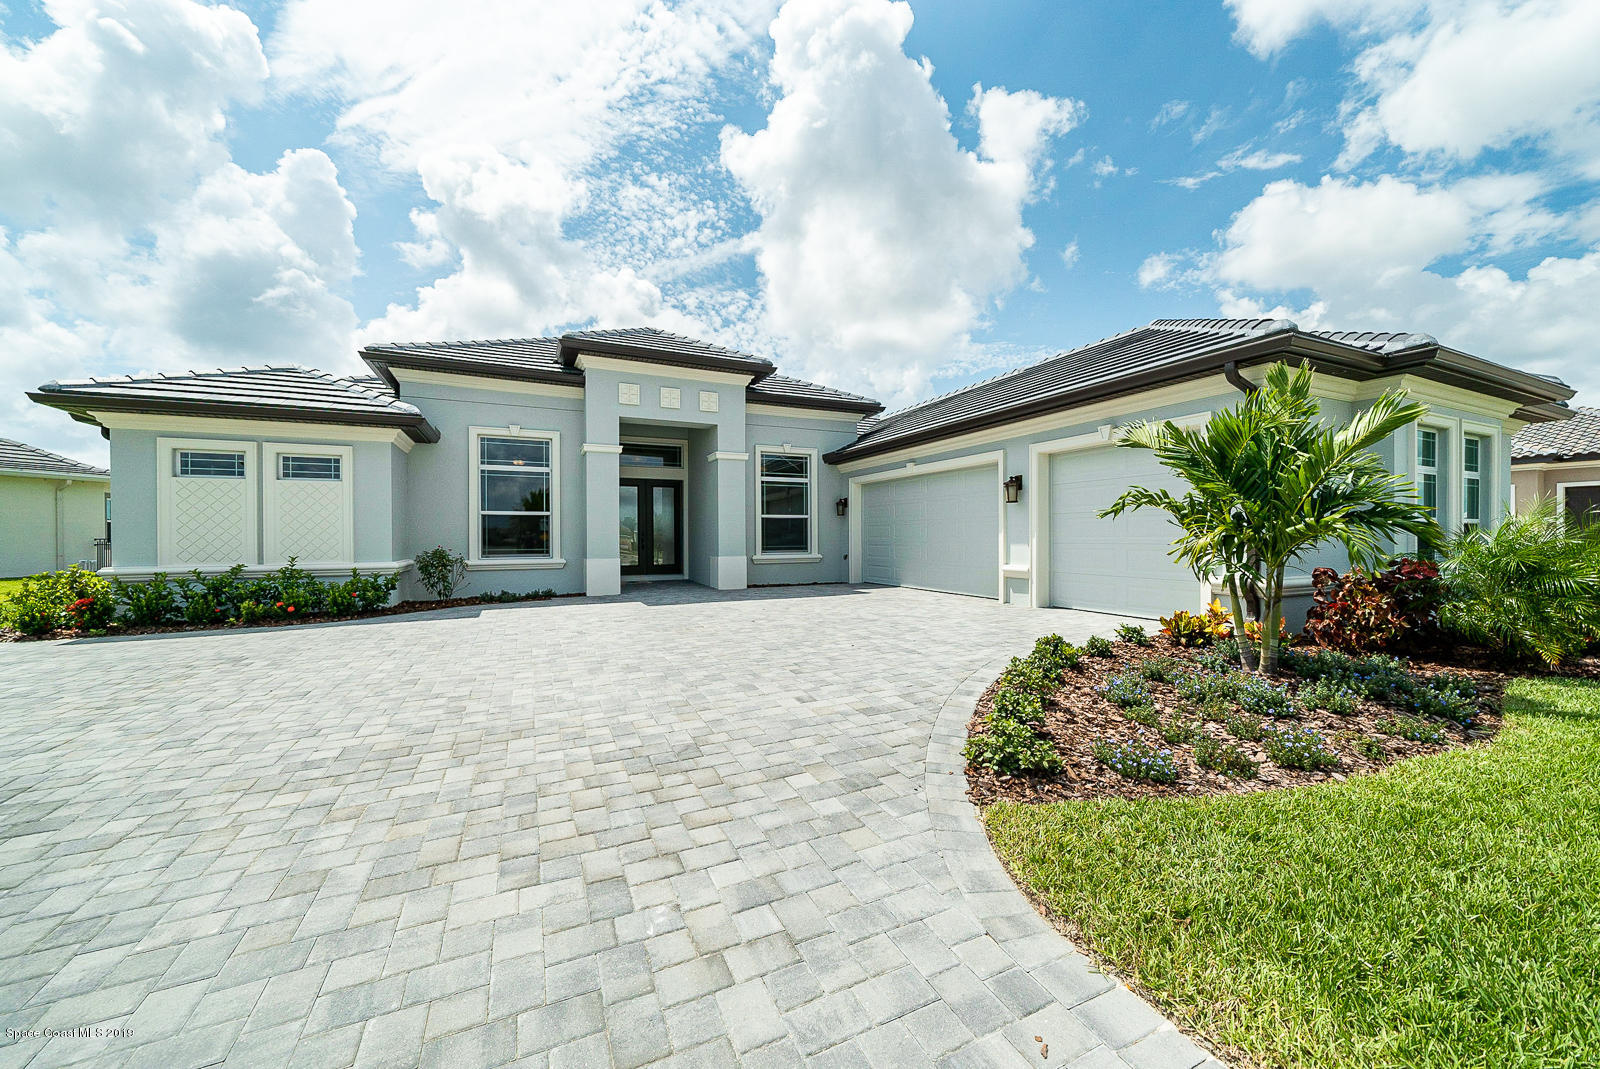 Single Family Homes for Sale at 8679 Serrano Melbourne, Florida 32940 United States